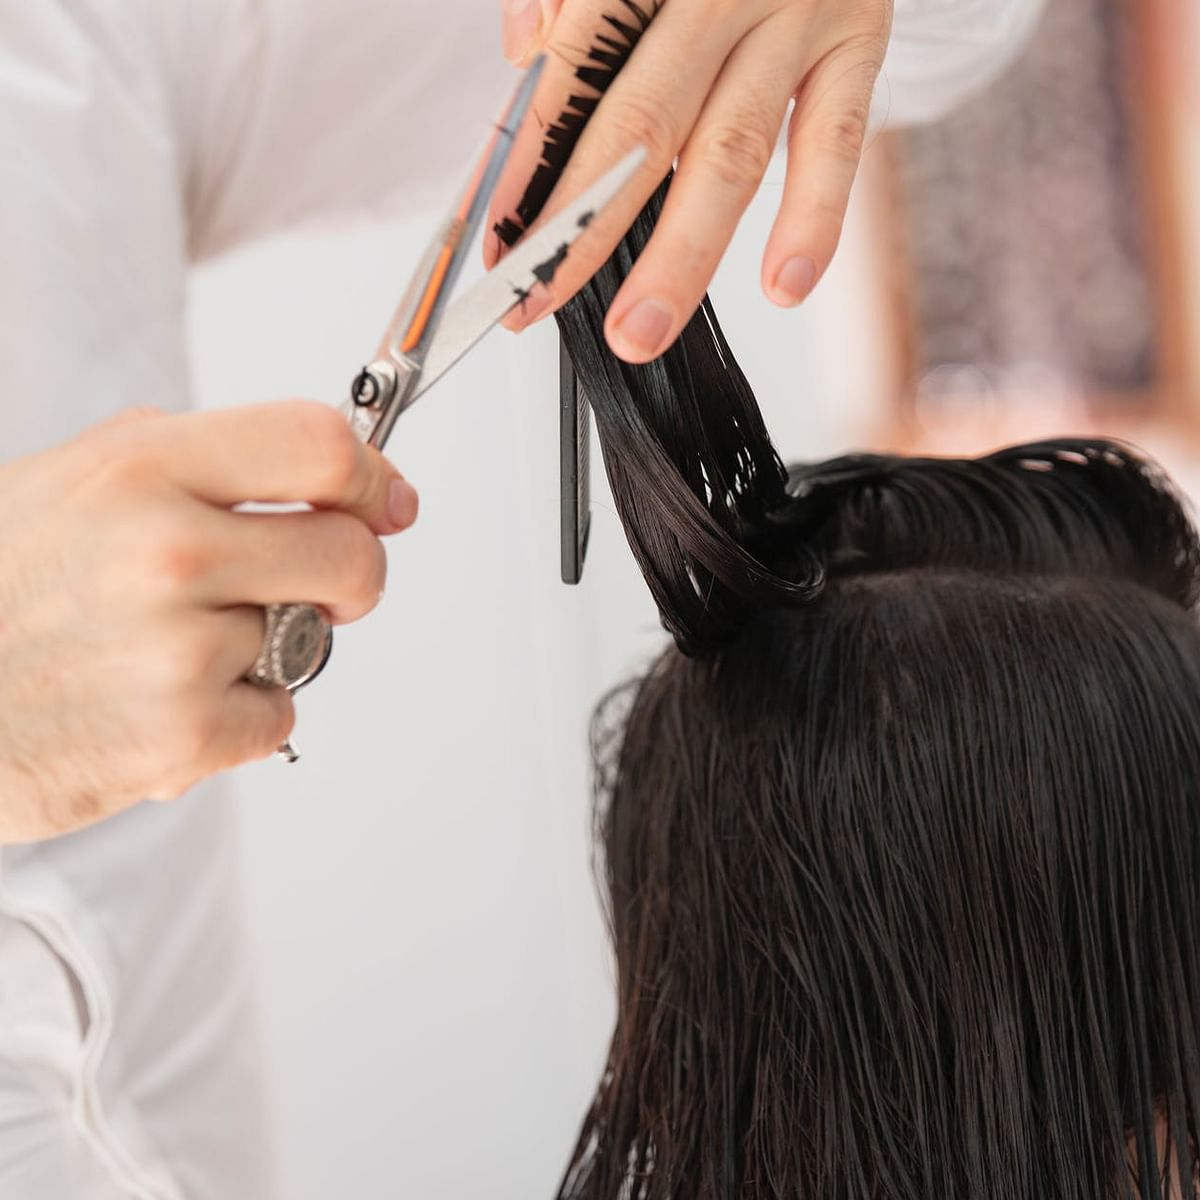 Helping hand:  Mumbai hairdresser gives free haircuts to poor children amid lockdown